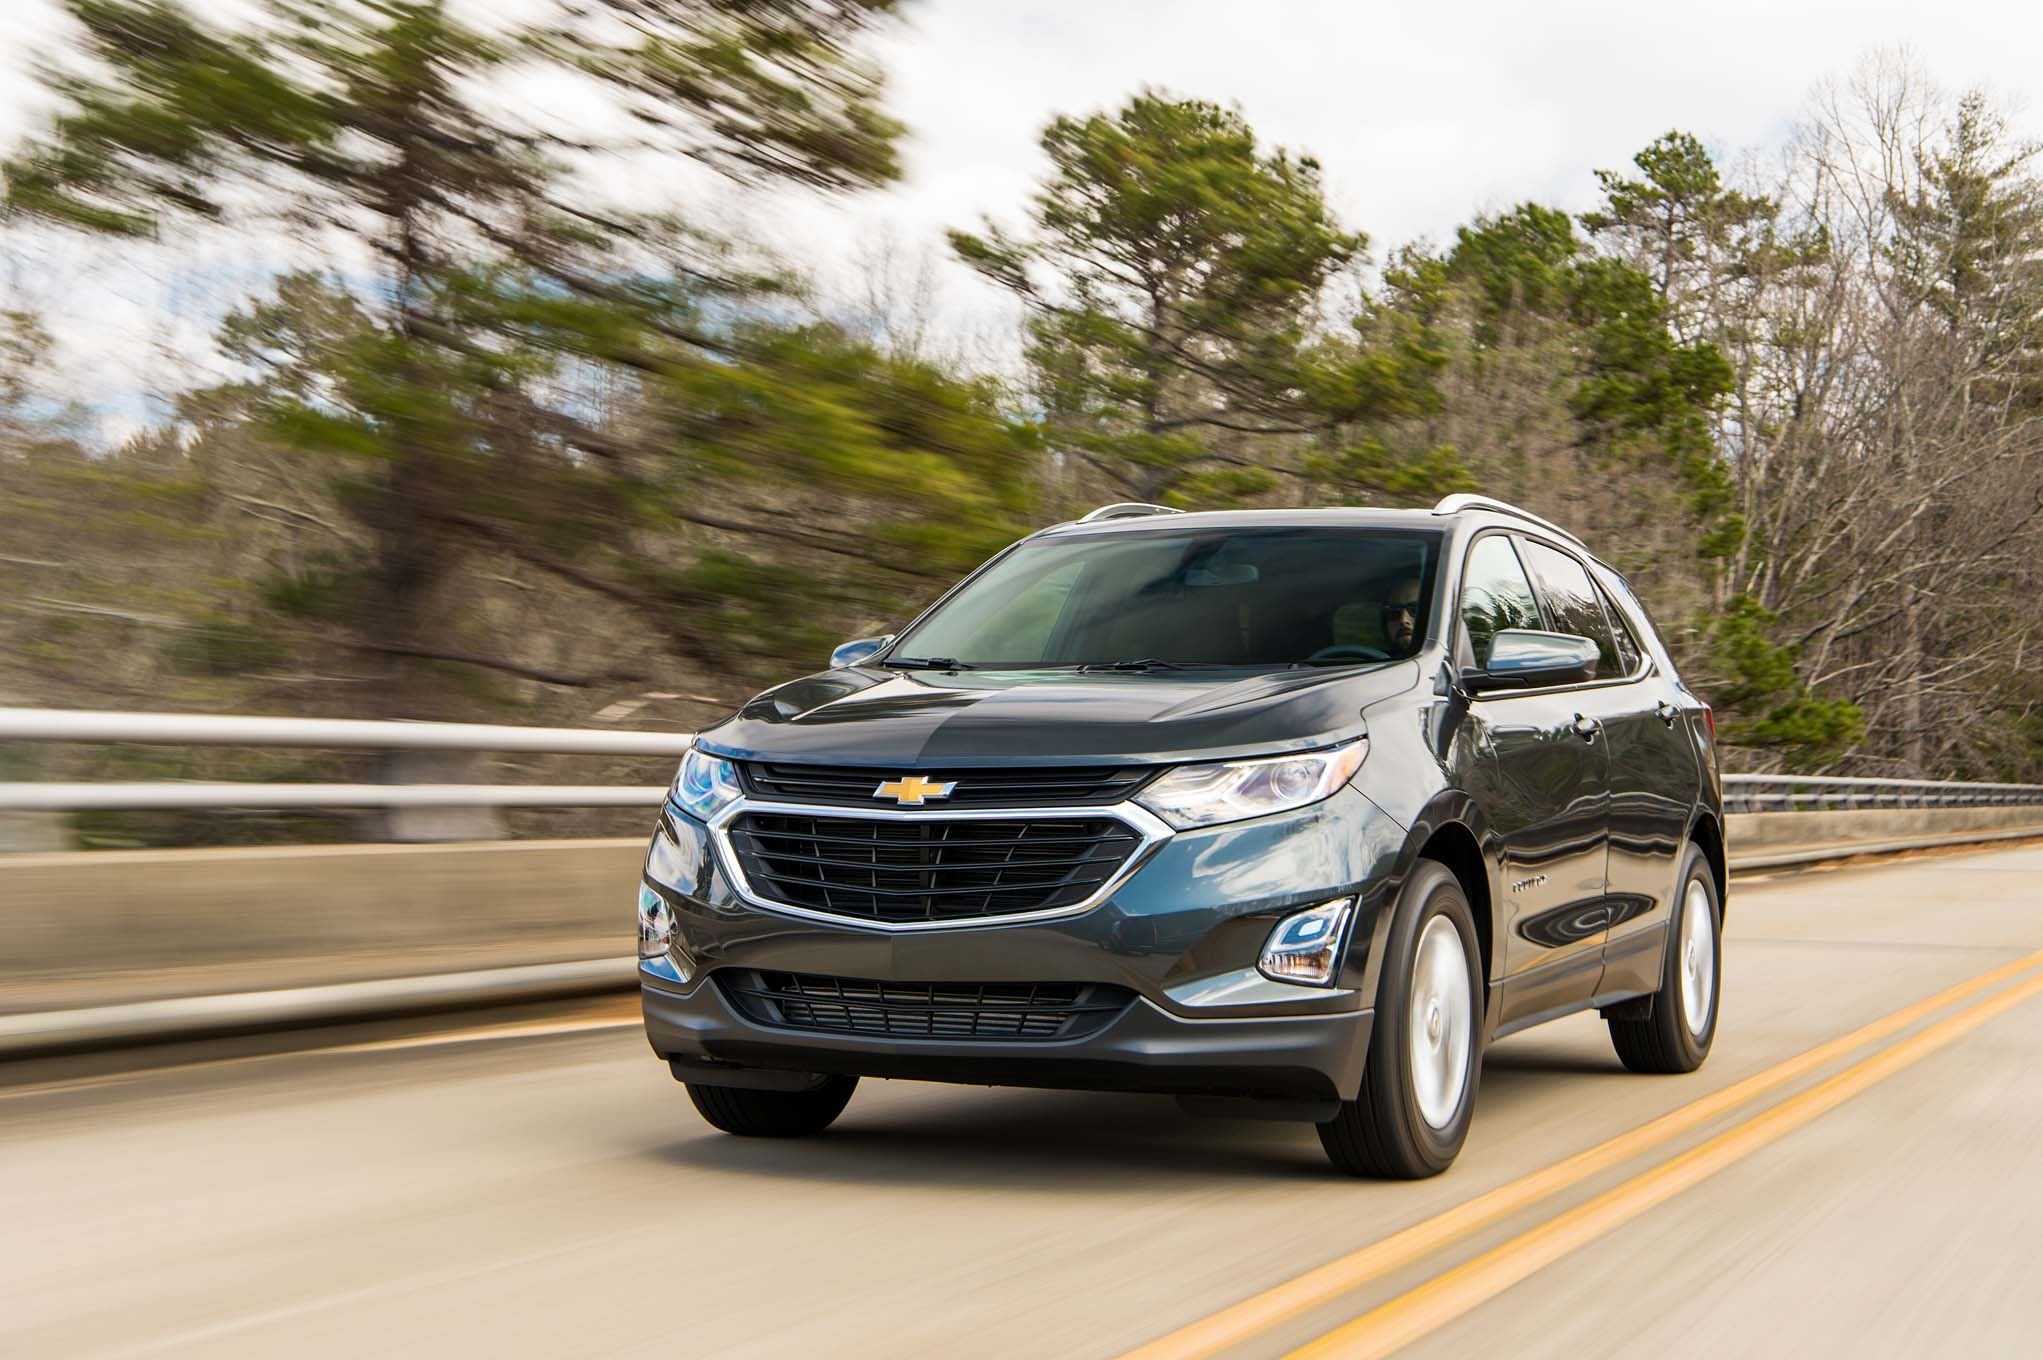 Used Cars Under $2000 Lovely 2018 Chevrolet Equinox First Drive Review